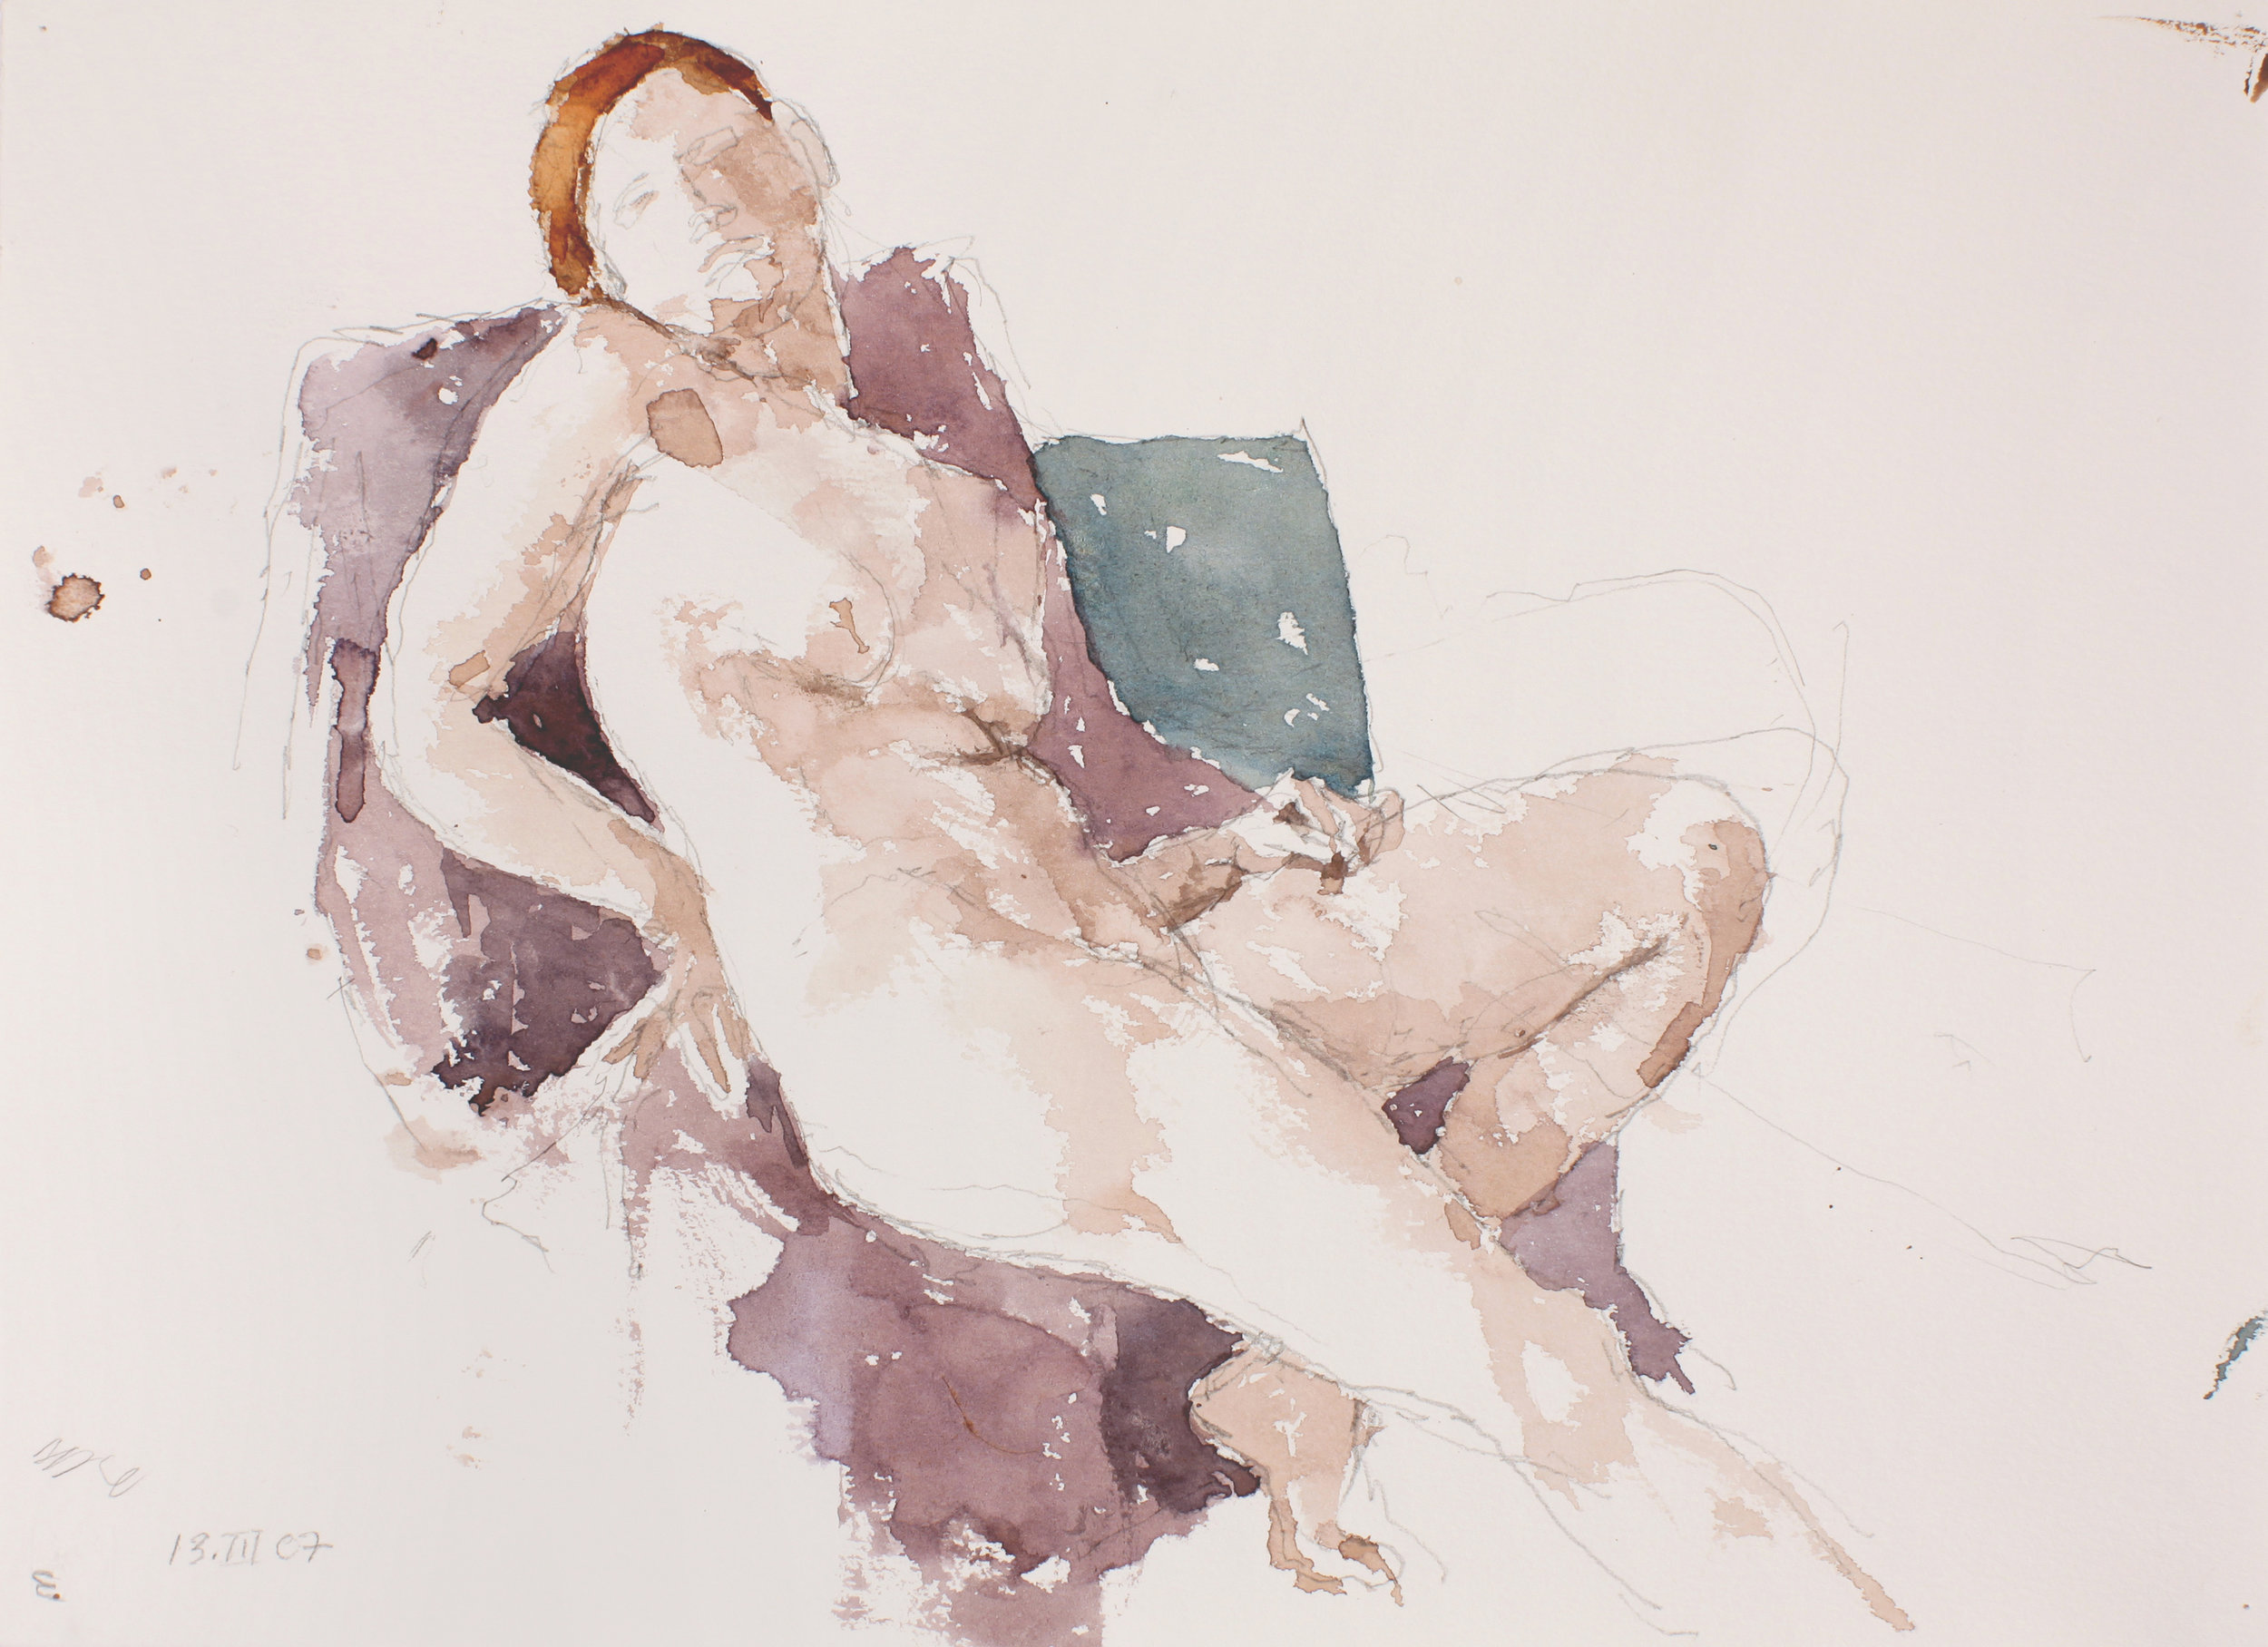 2007_Seated_Nude_with_Turned_Head_watercolour_and_pencil_on_paper_11x15in_WPF055.jpg